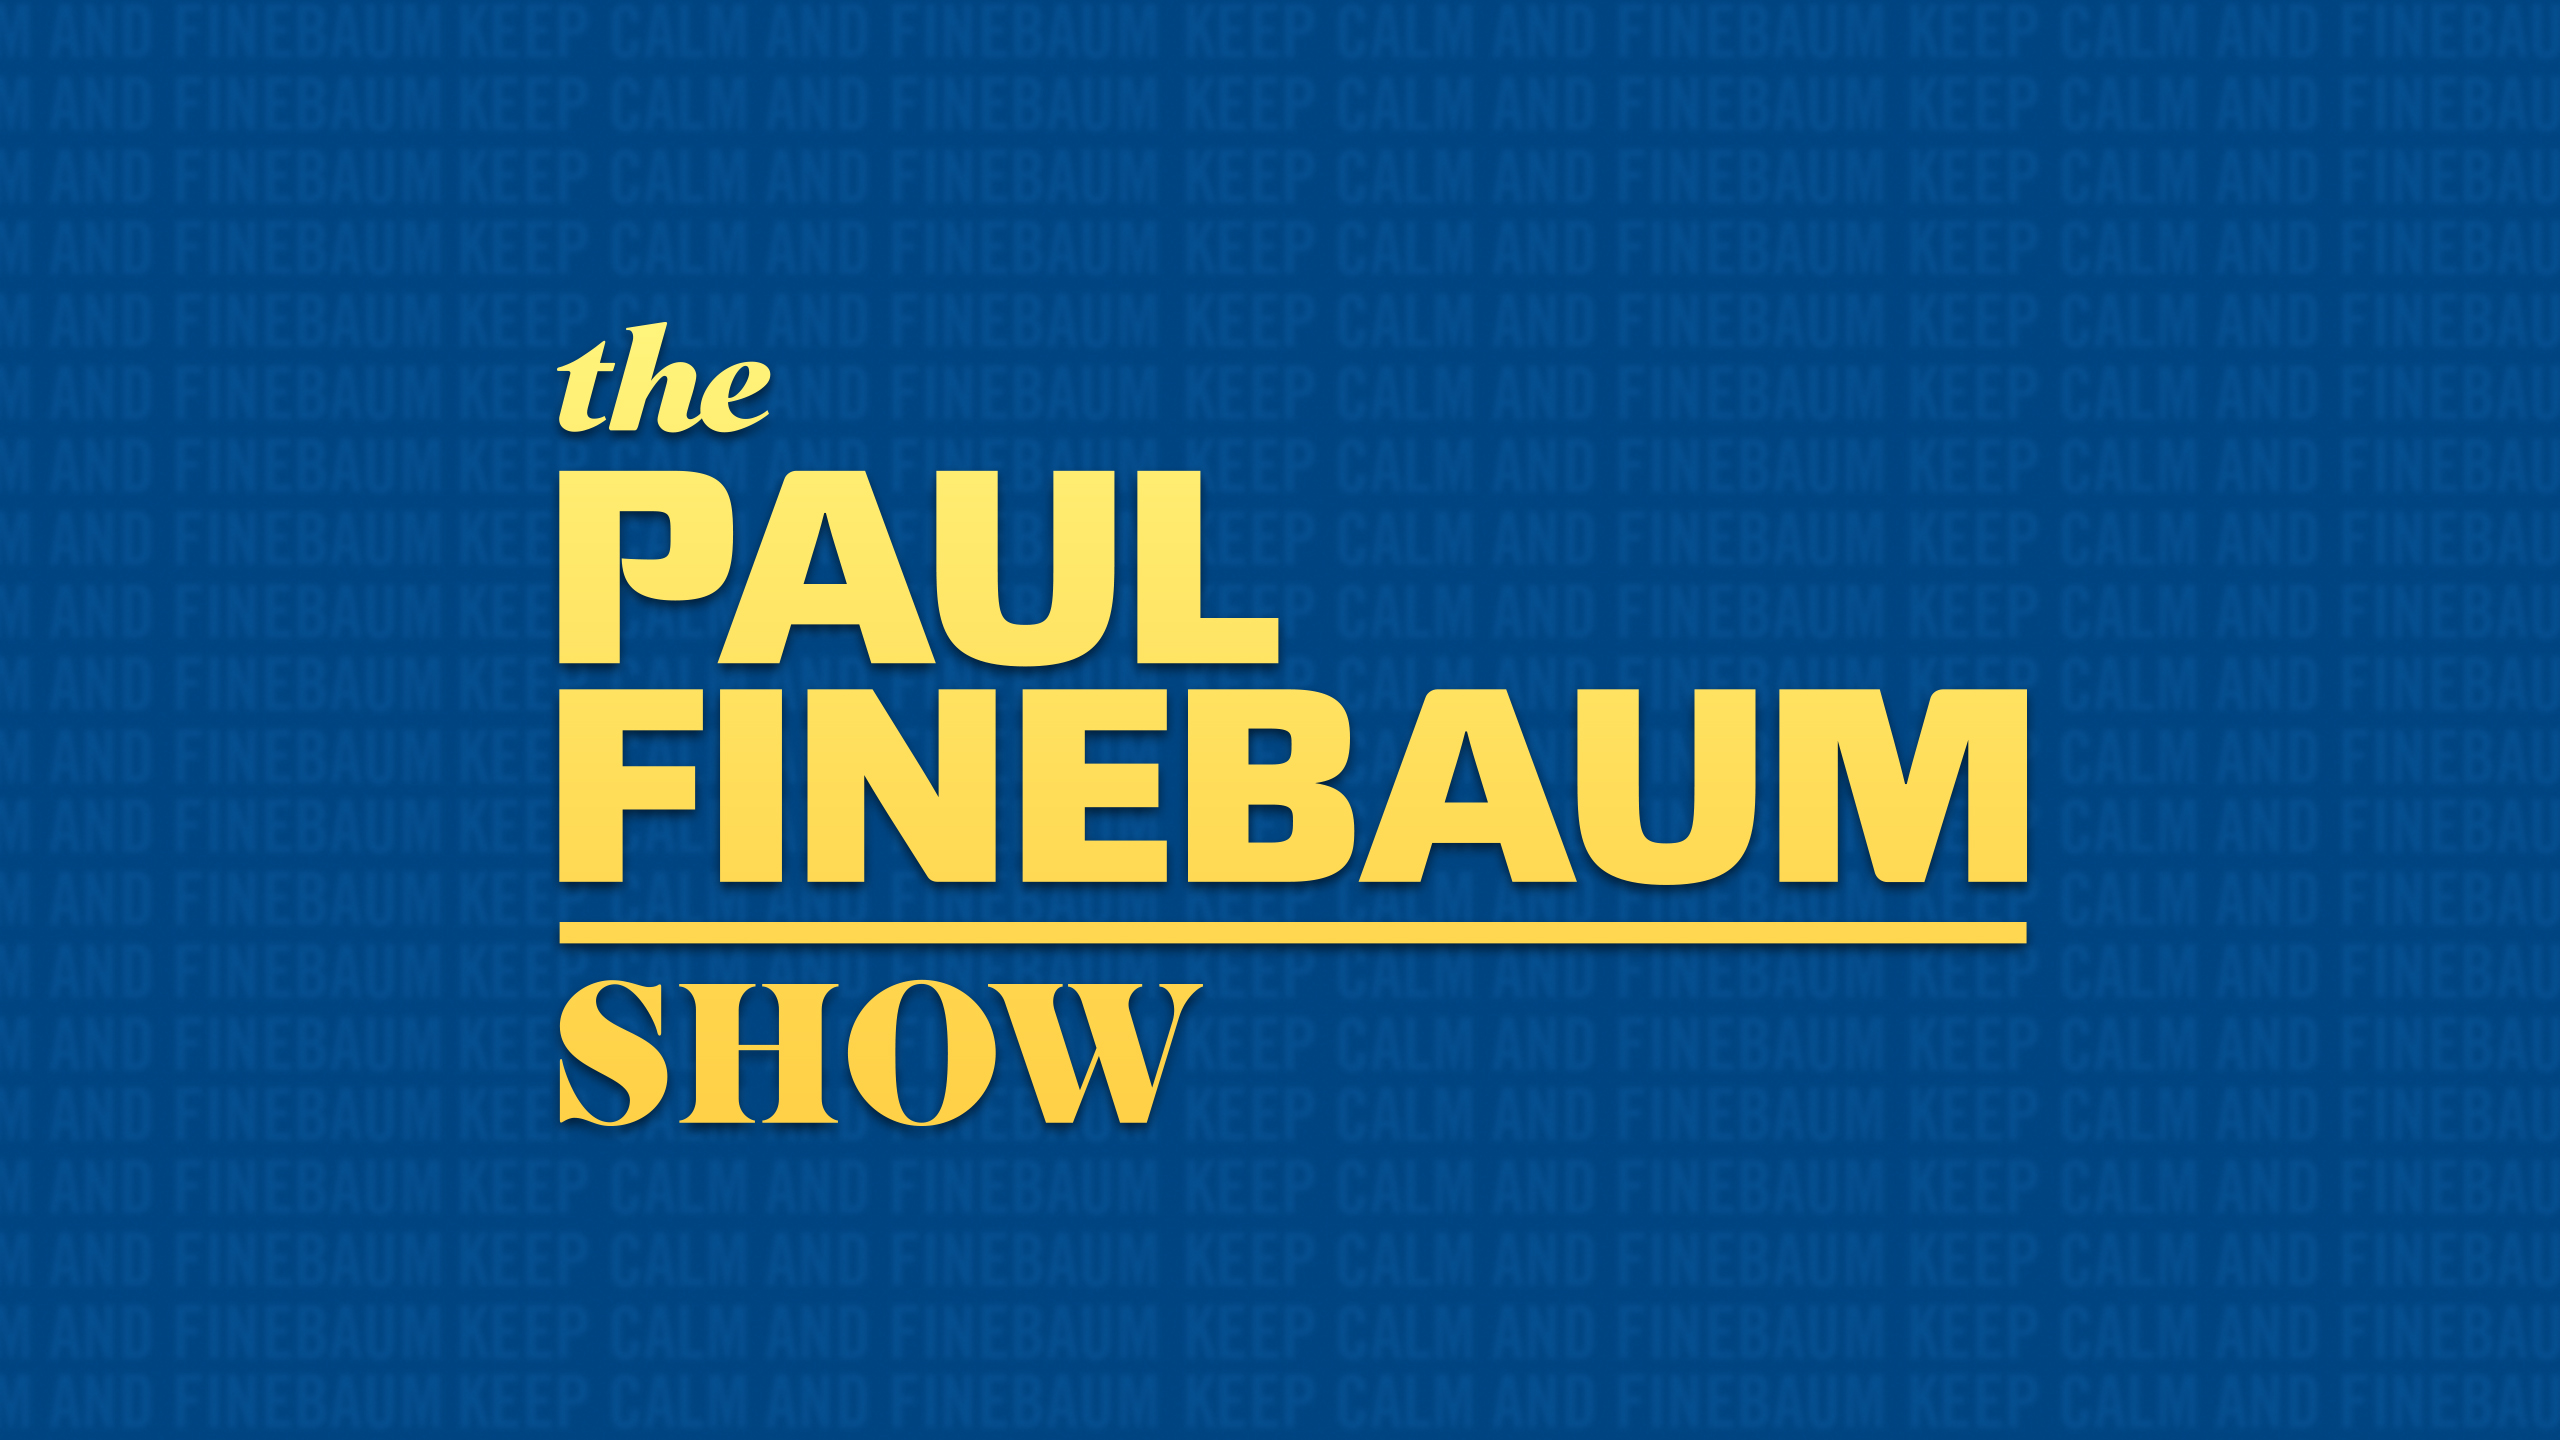 Thu, 4/18 - The Paul Finebaum Show